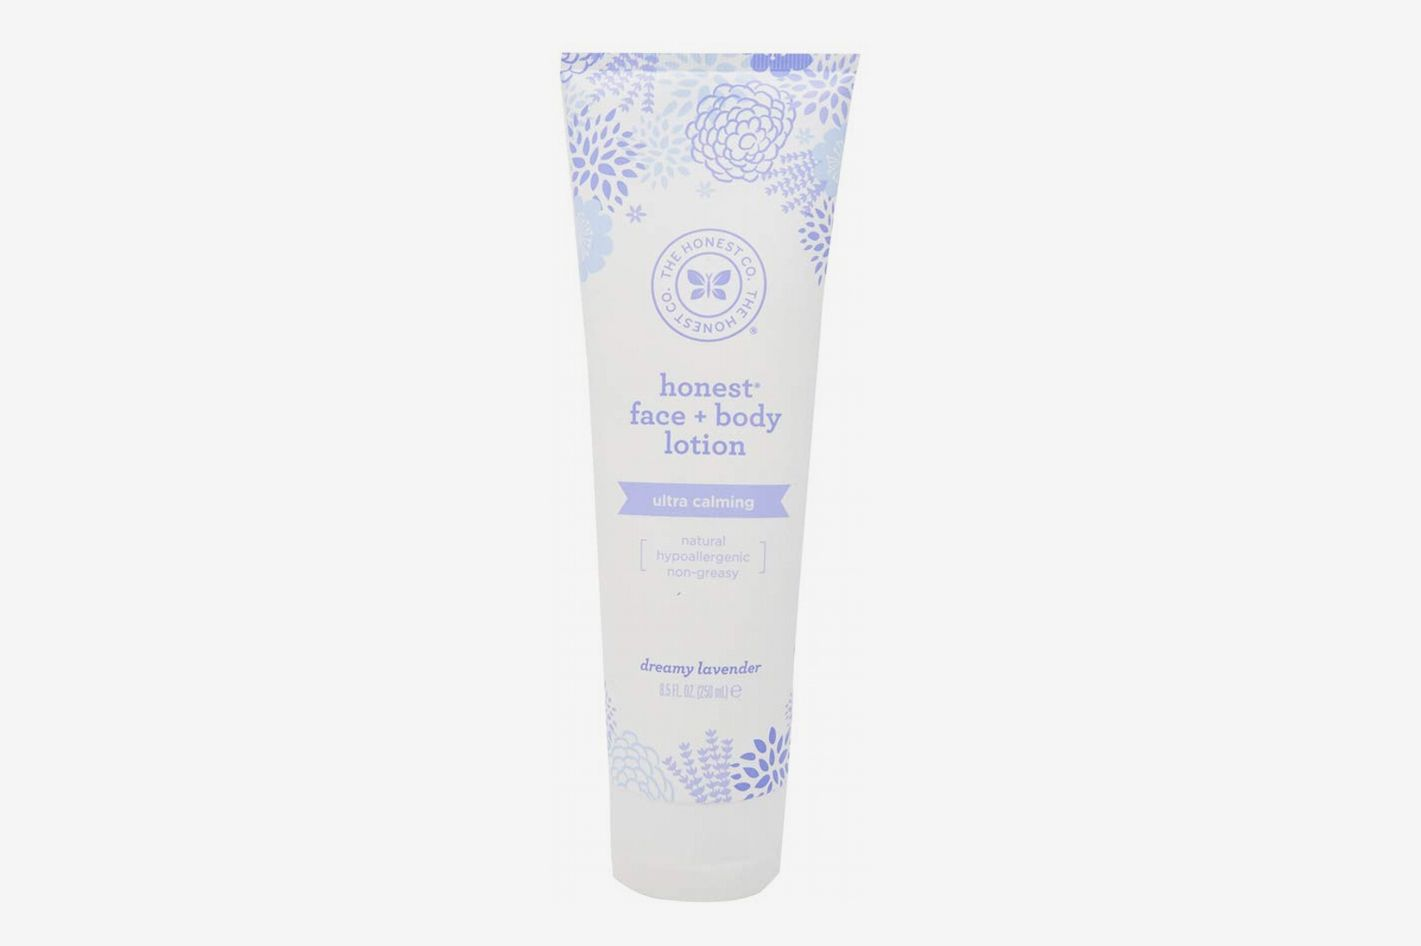 Honest Calming Lavender Hypoallergenic Face and Body Lotion